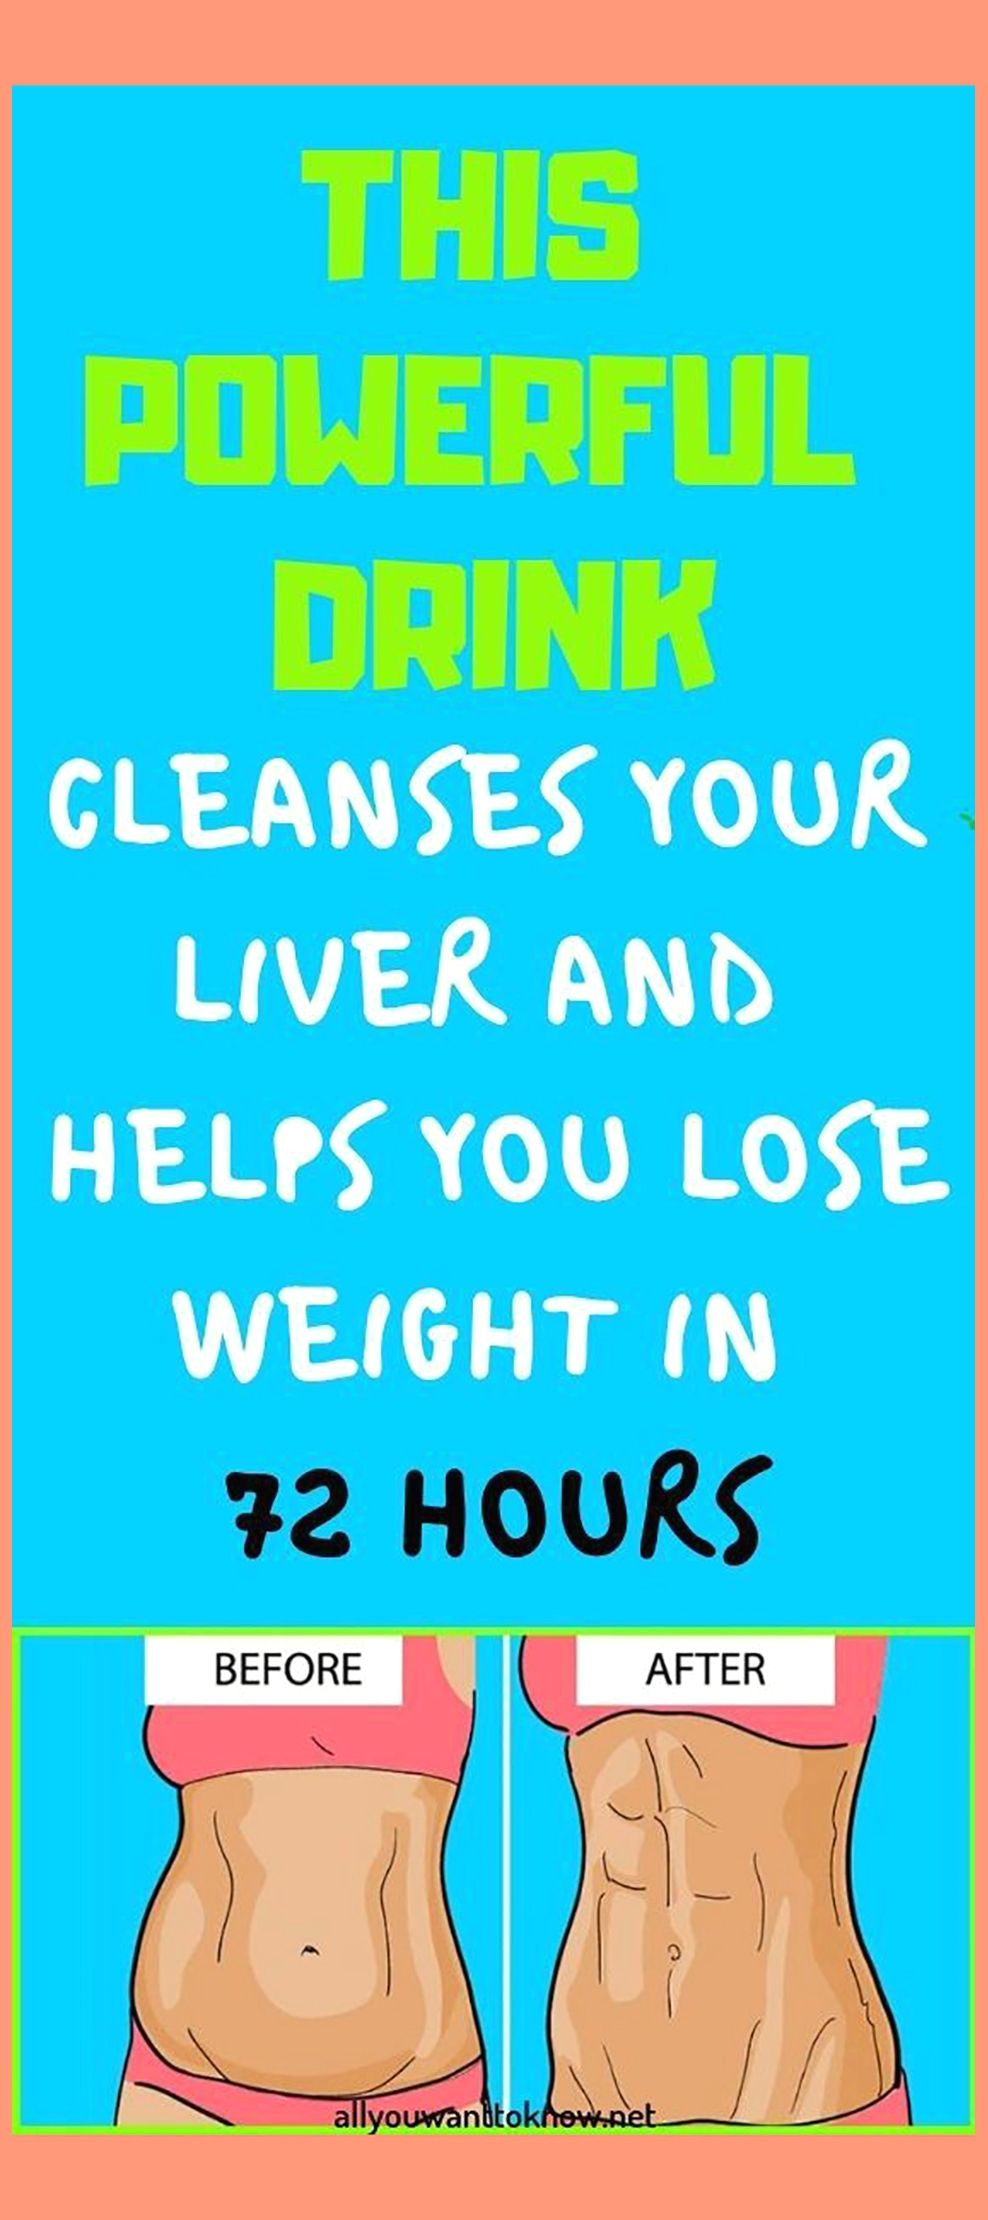 A Powerful Drink That Cleanses Your Liver And Help